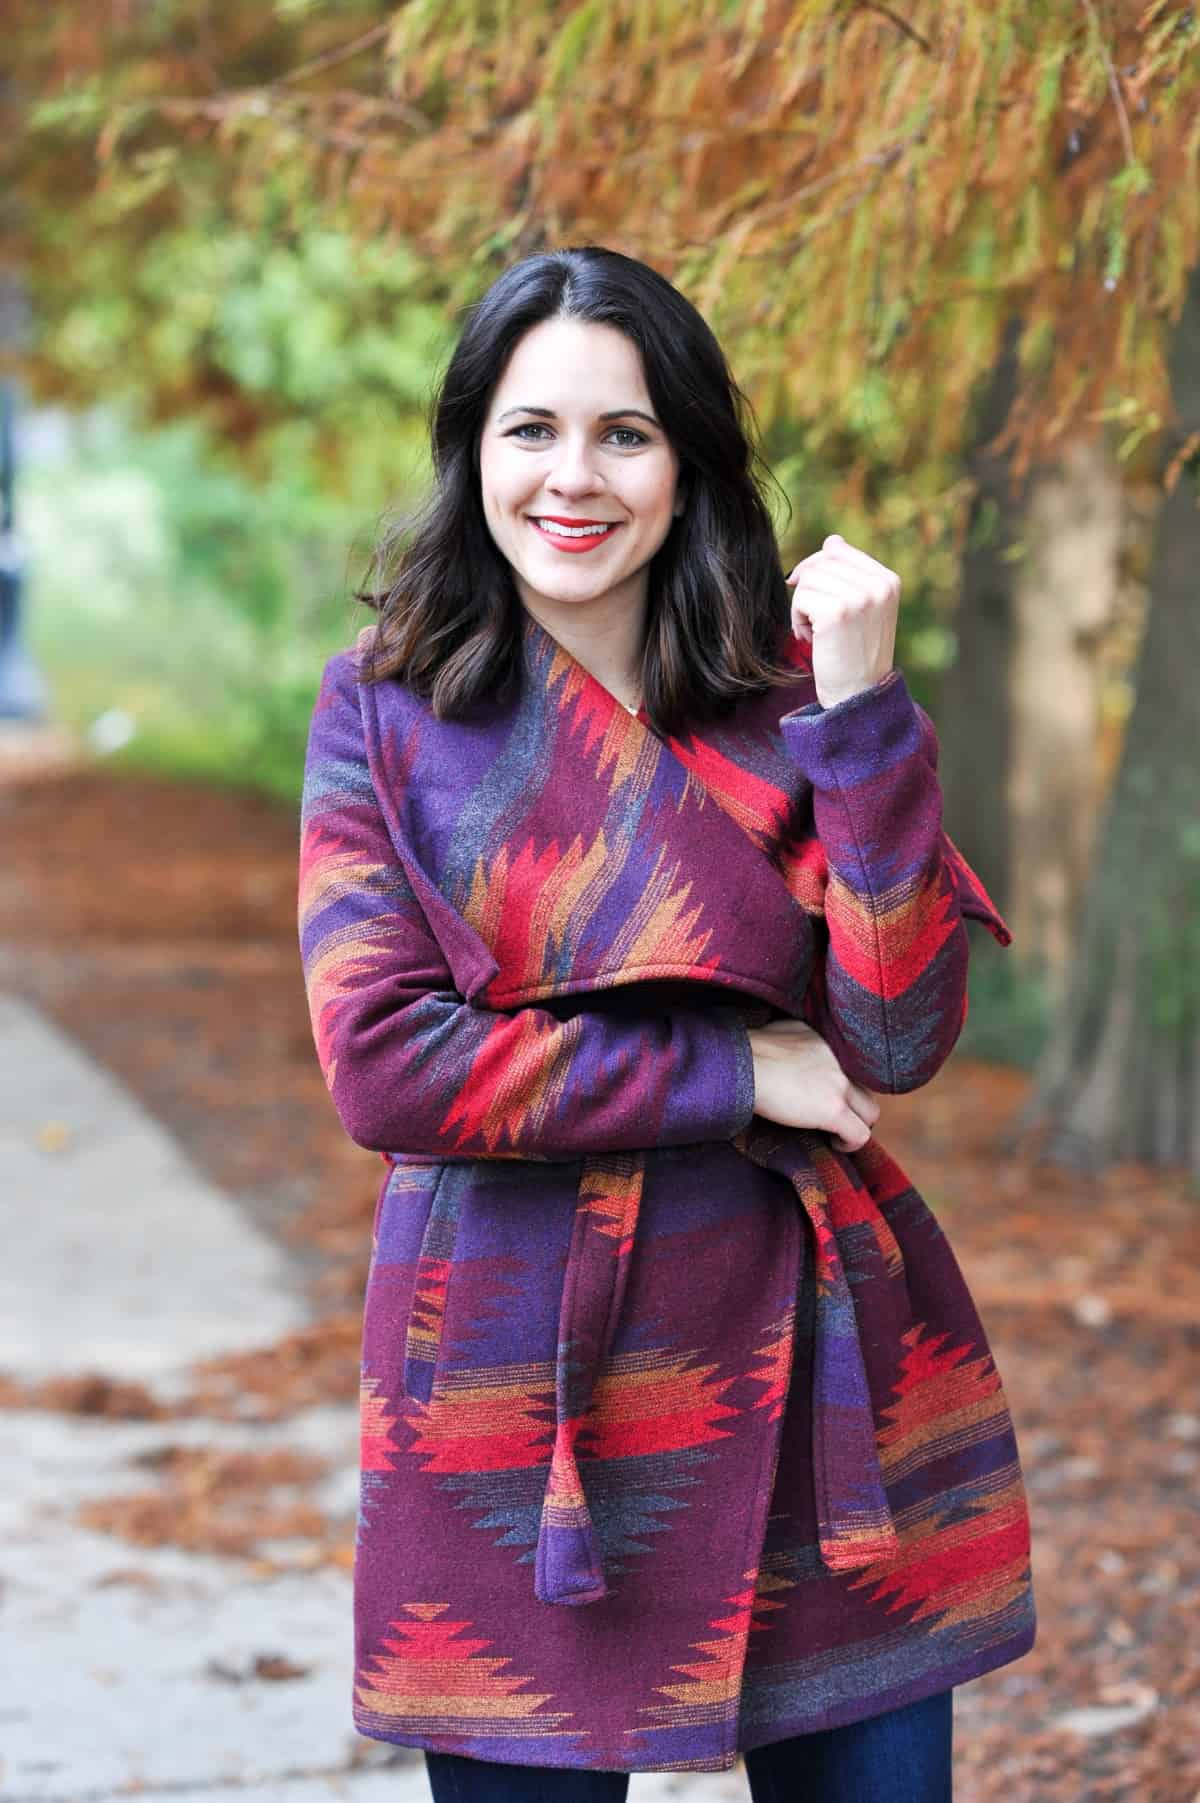 Aztec Wrap Coat, Winter outfit ideas via @mystylevita - 8